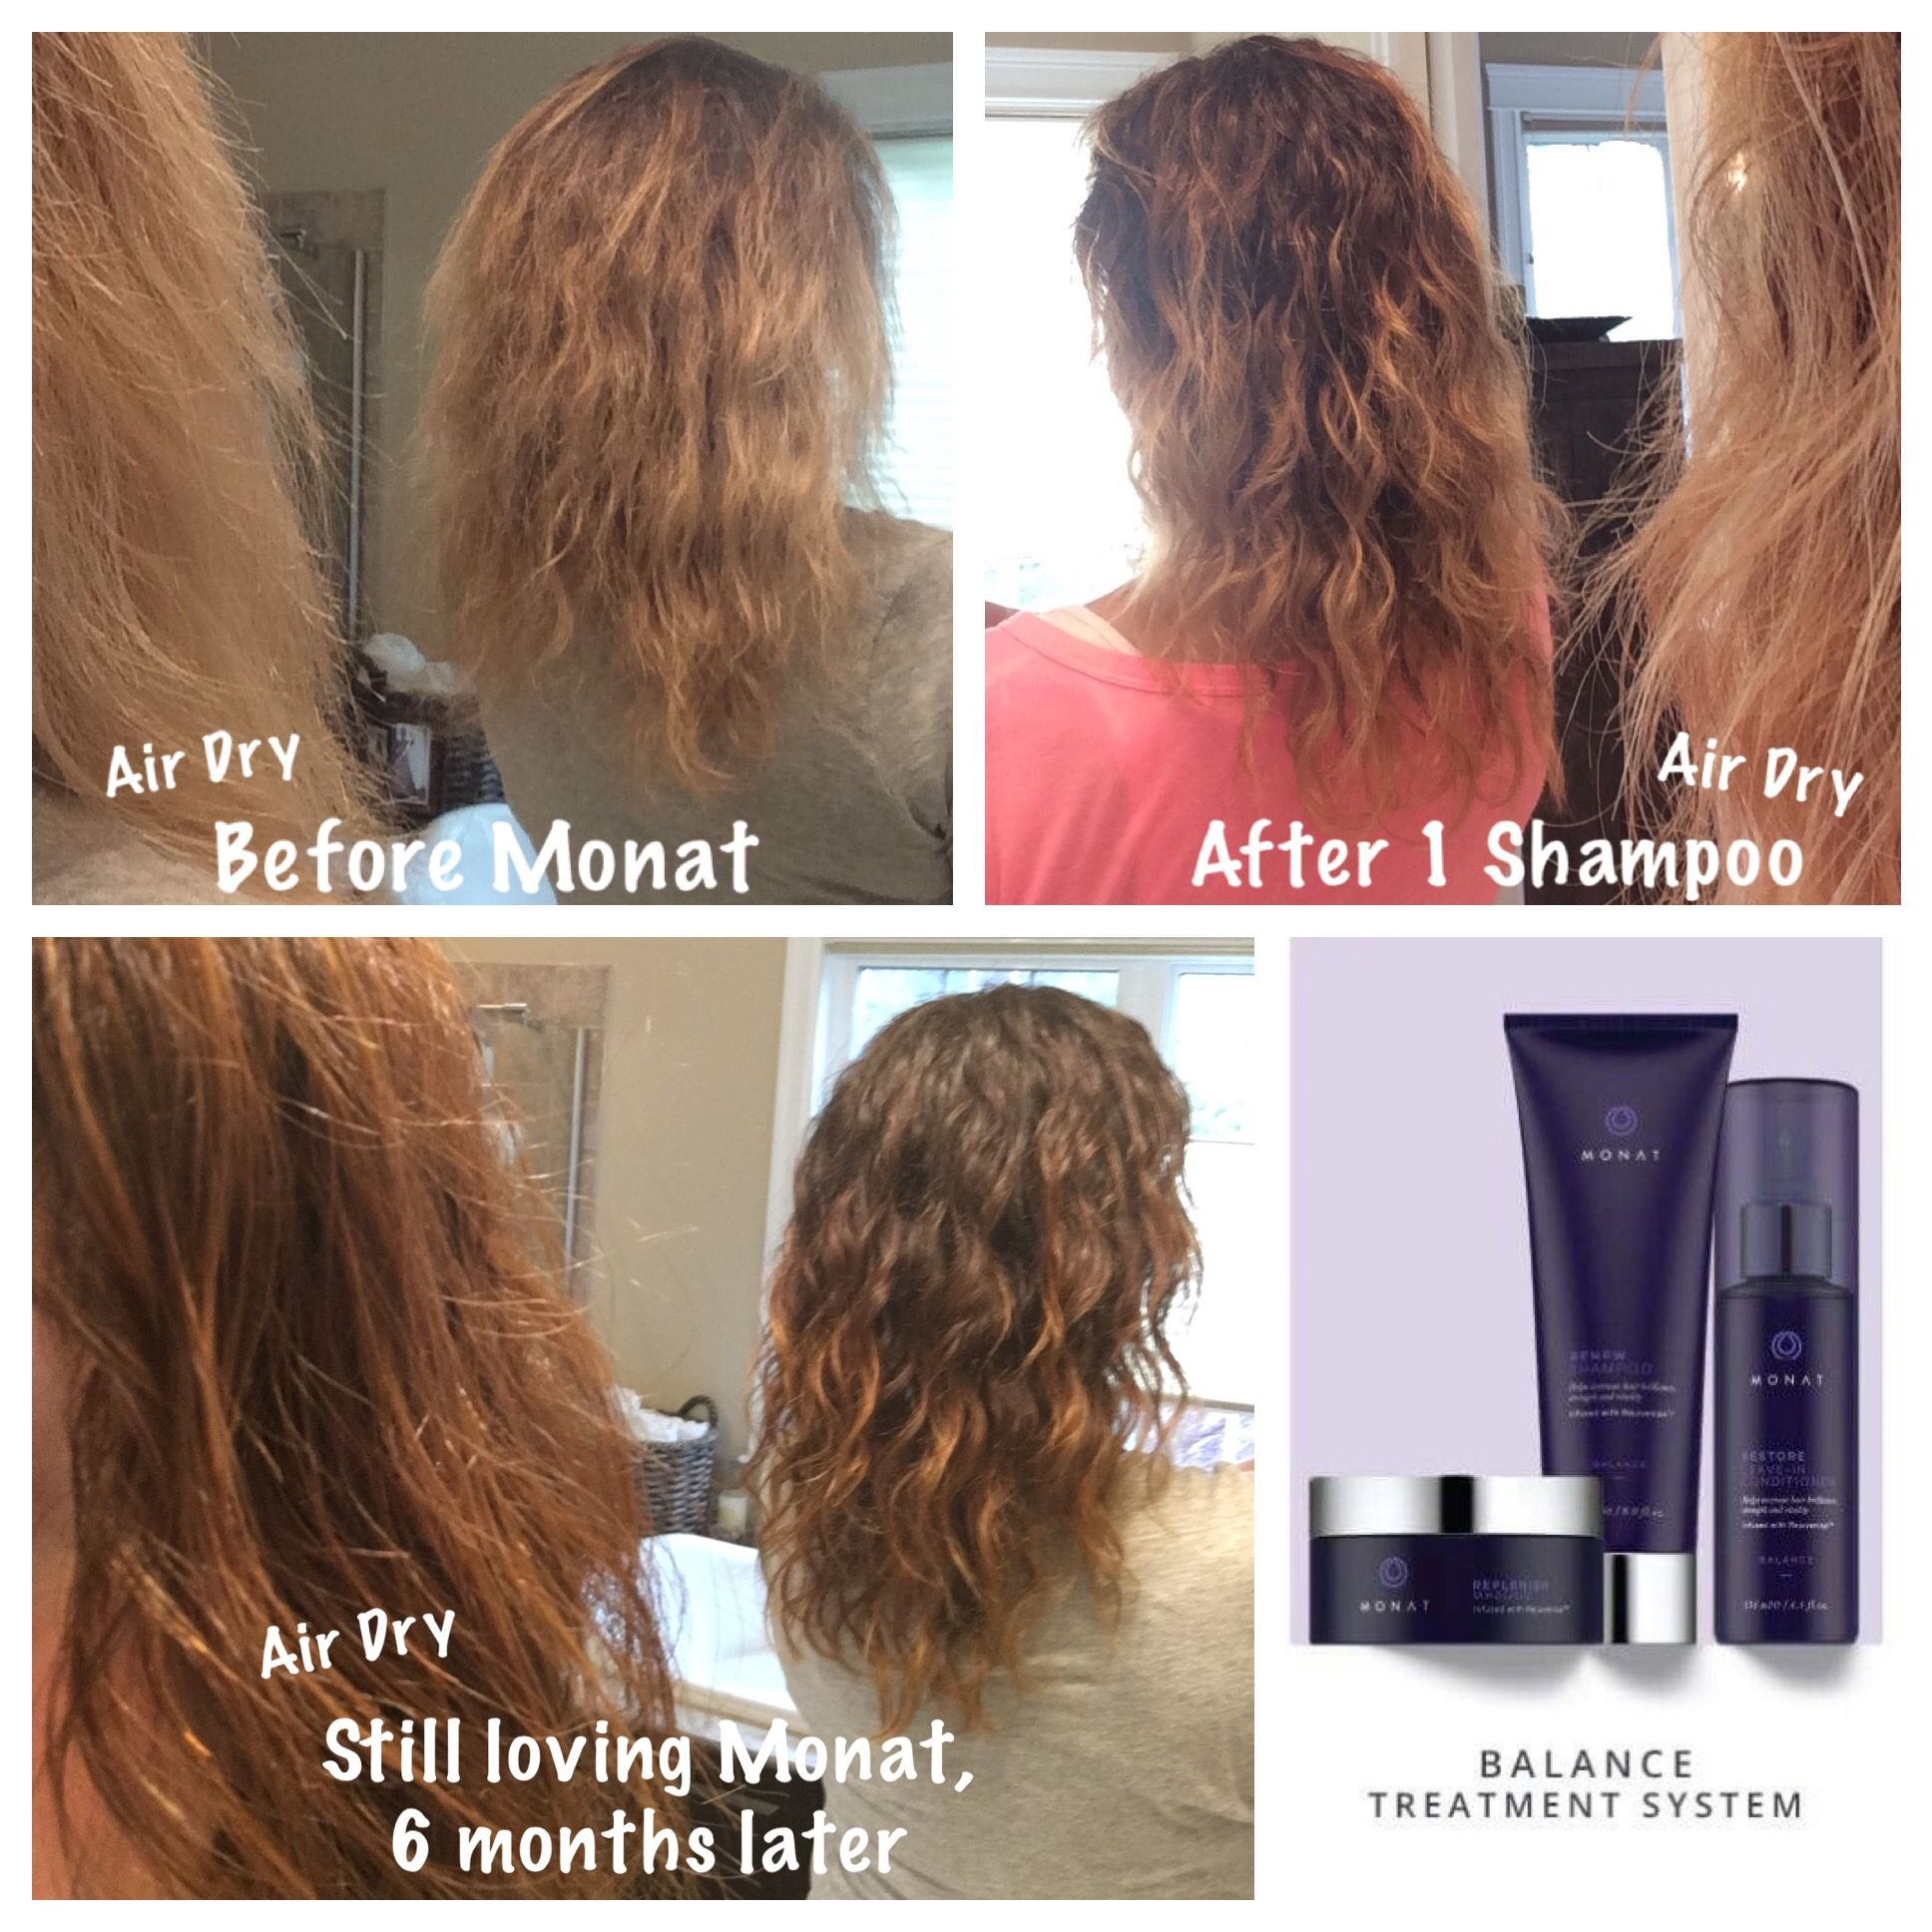 Damaged hair breakage dry itchy scalp hair loss These are my